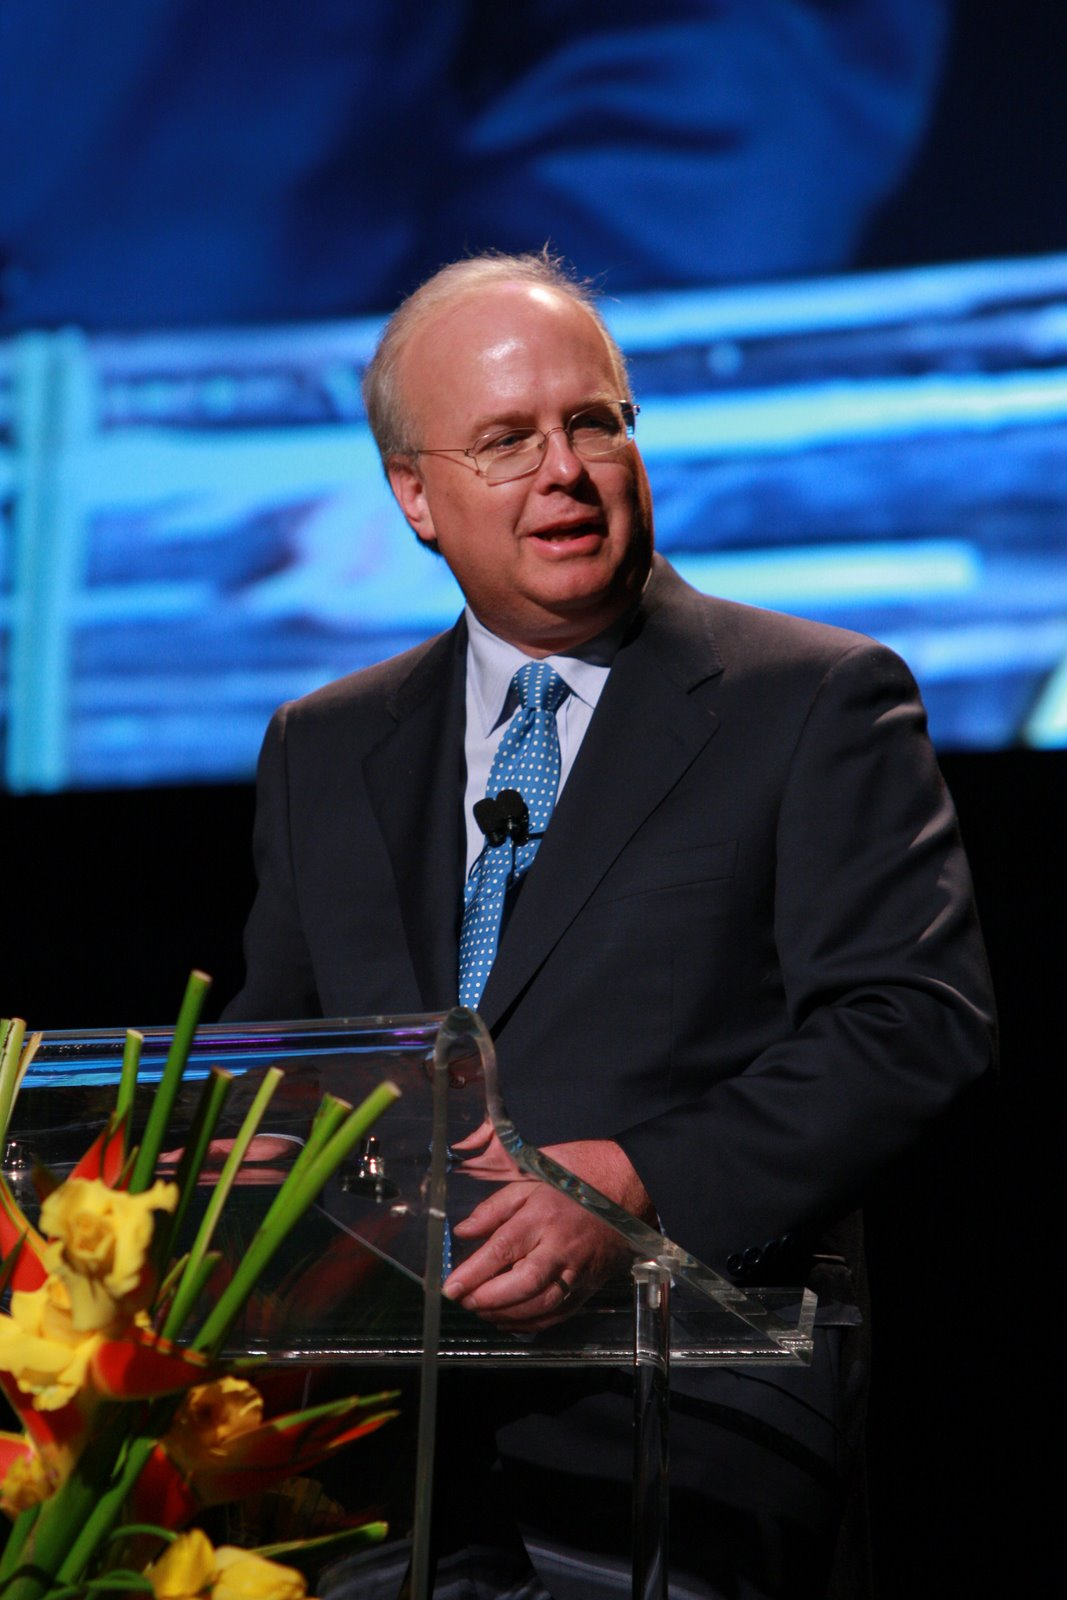 Karl Rove-Linked Conservative Group, American Crossroads, Adapts to New Campaign Finance Landscape